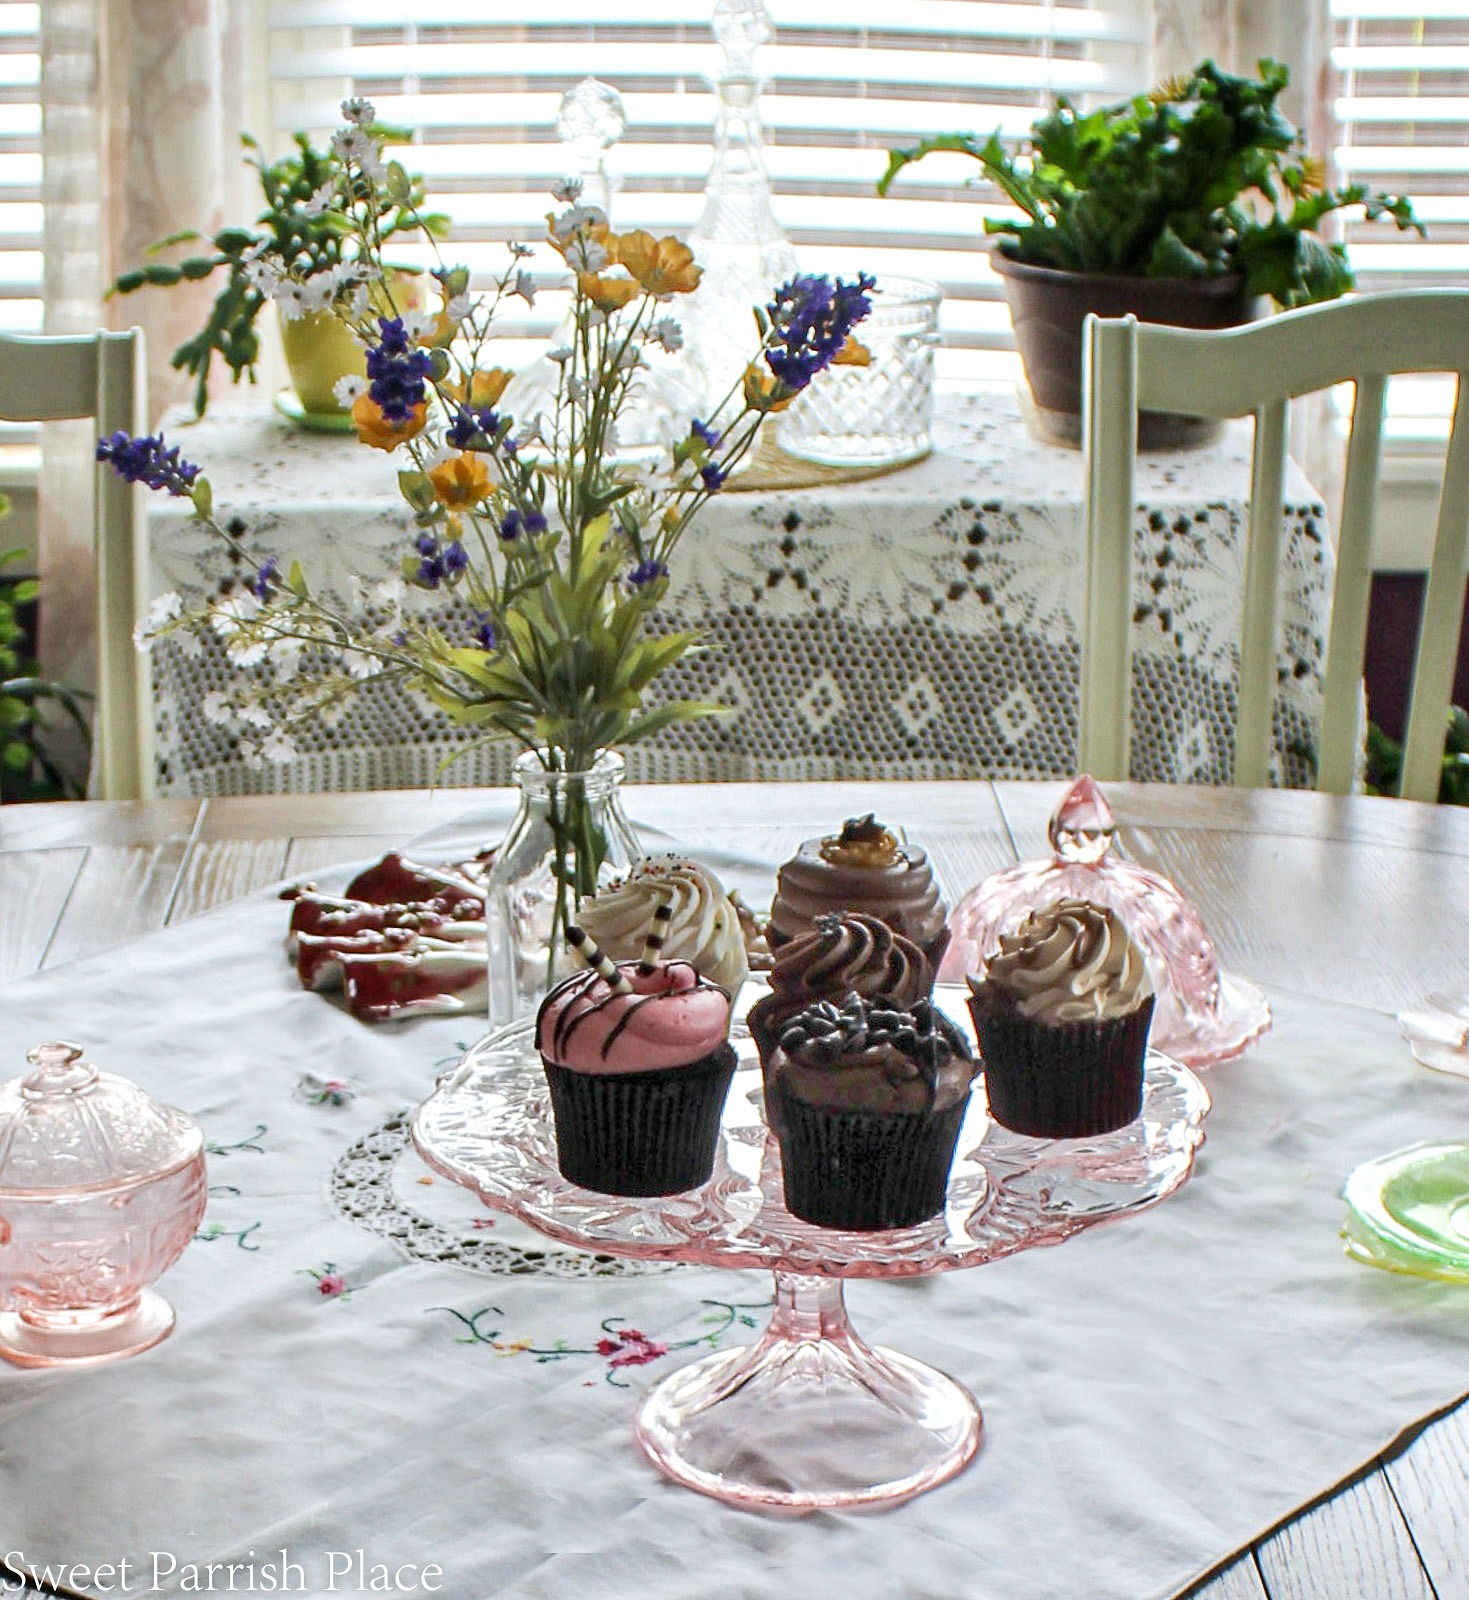 97 year old home tour-cupcakes on table